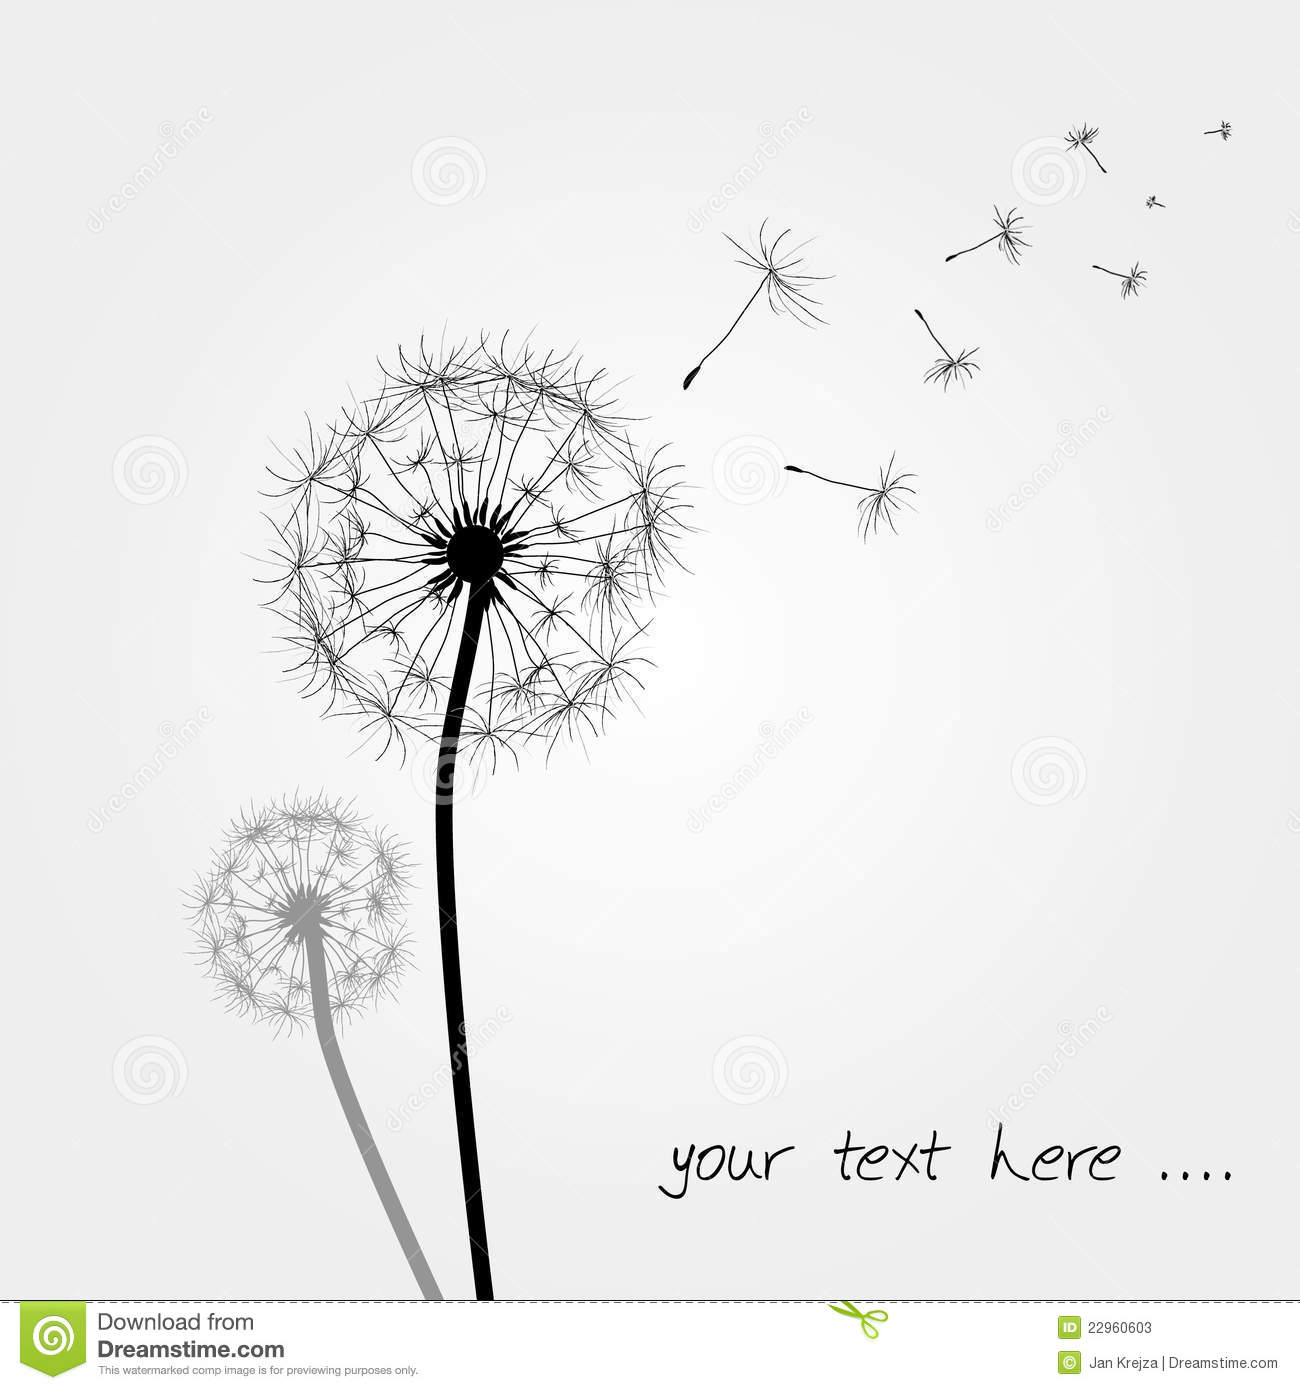 dandelions blowing the wind coloring pages | Dandelions Blowing In The Wind Tattoo